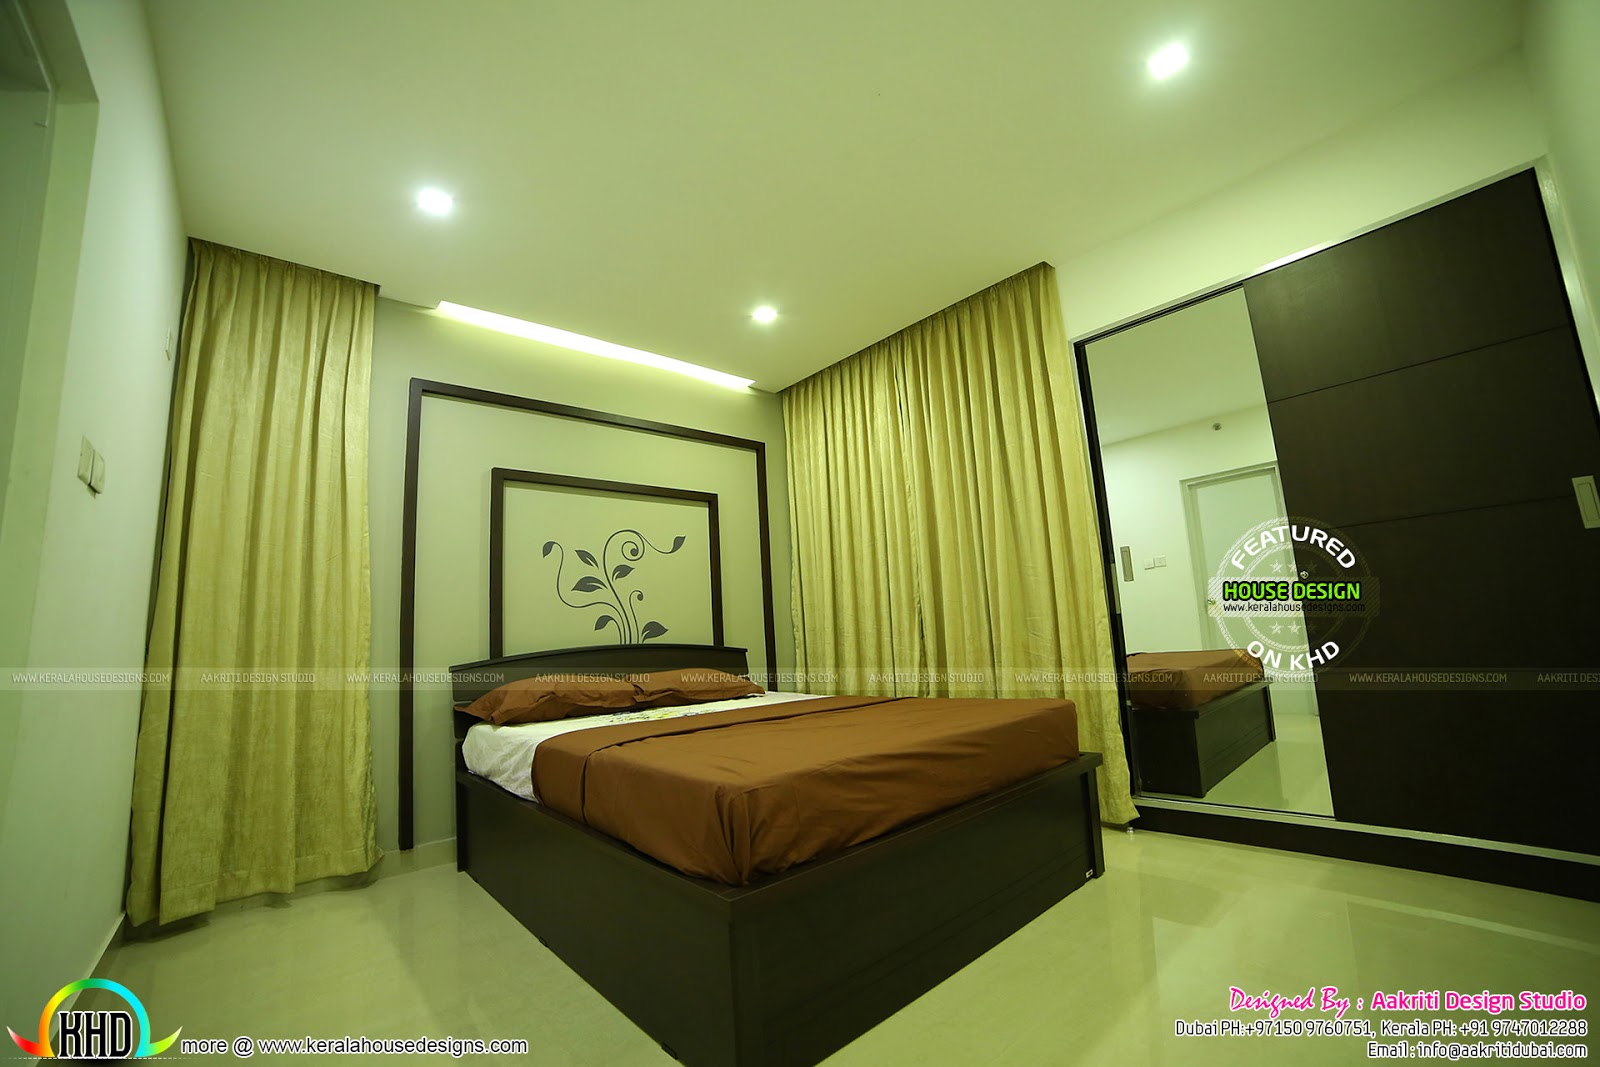 Home Interior Design Gallery: Finished Interior Photos From Kannur, Kerala